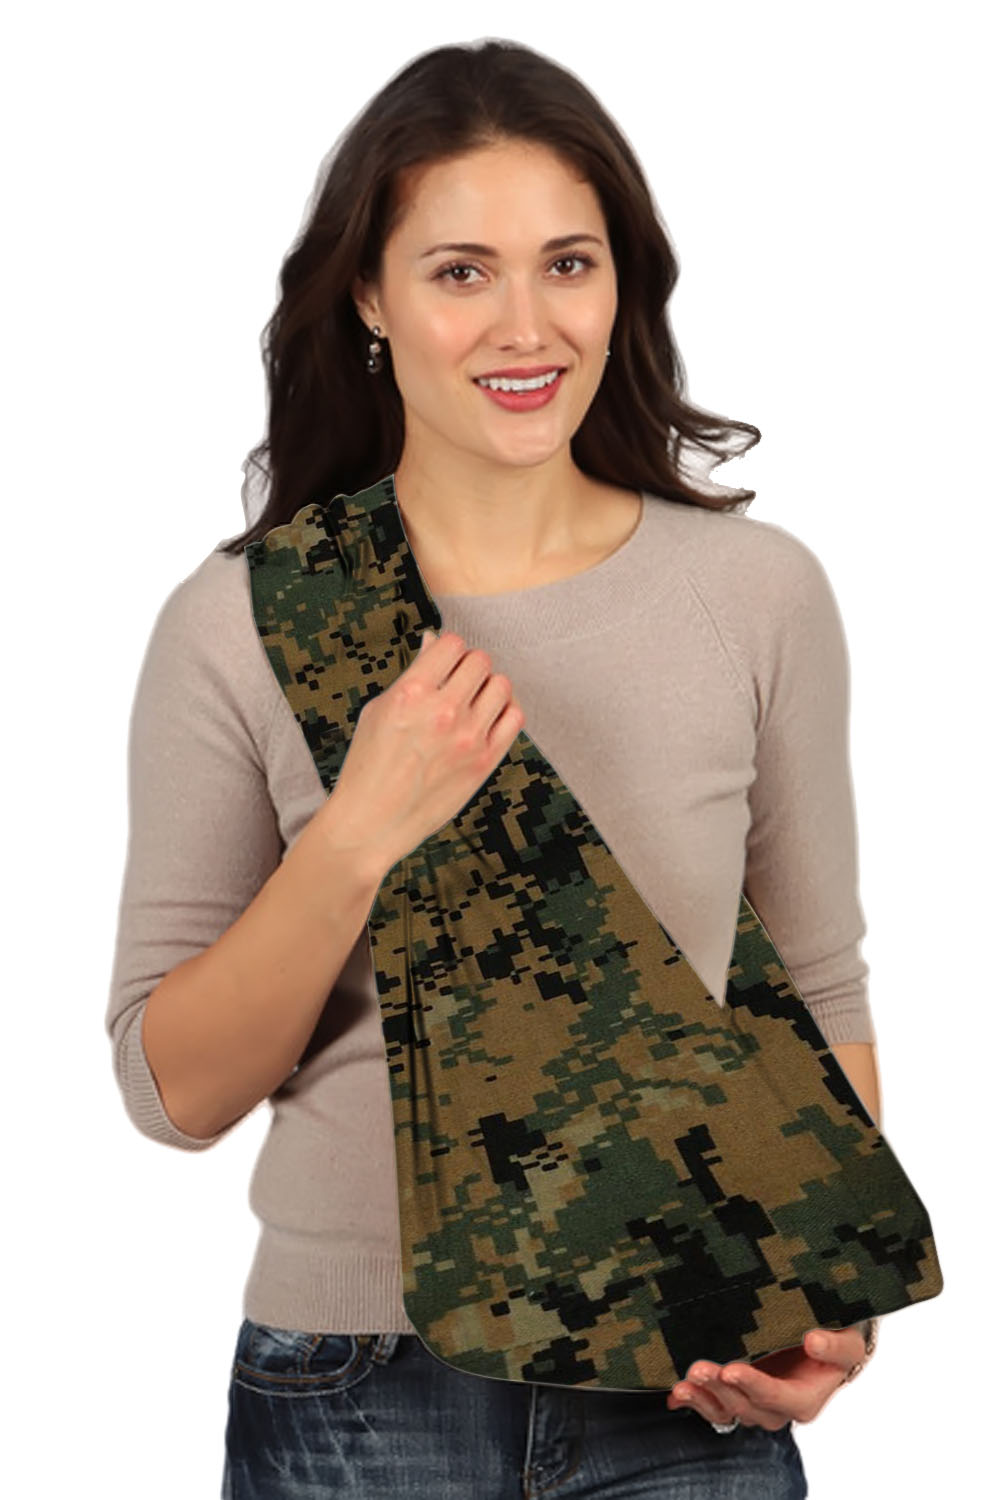 Infant Carrier Military Details About Hugamonkey Camouflage Military Infant Baby Soft Carrier Sling Green Black